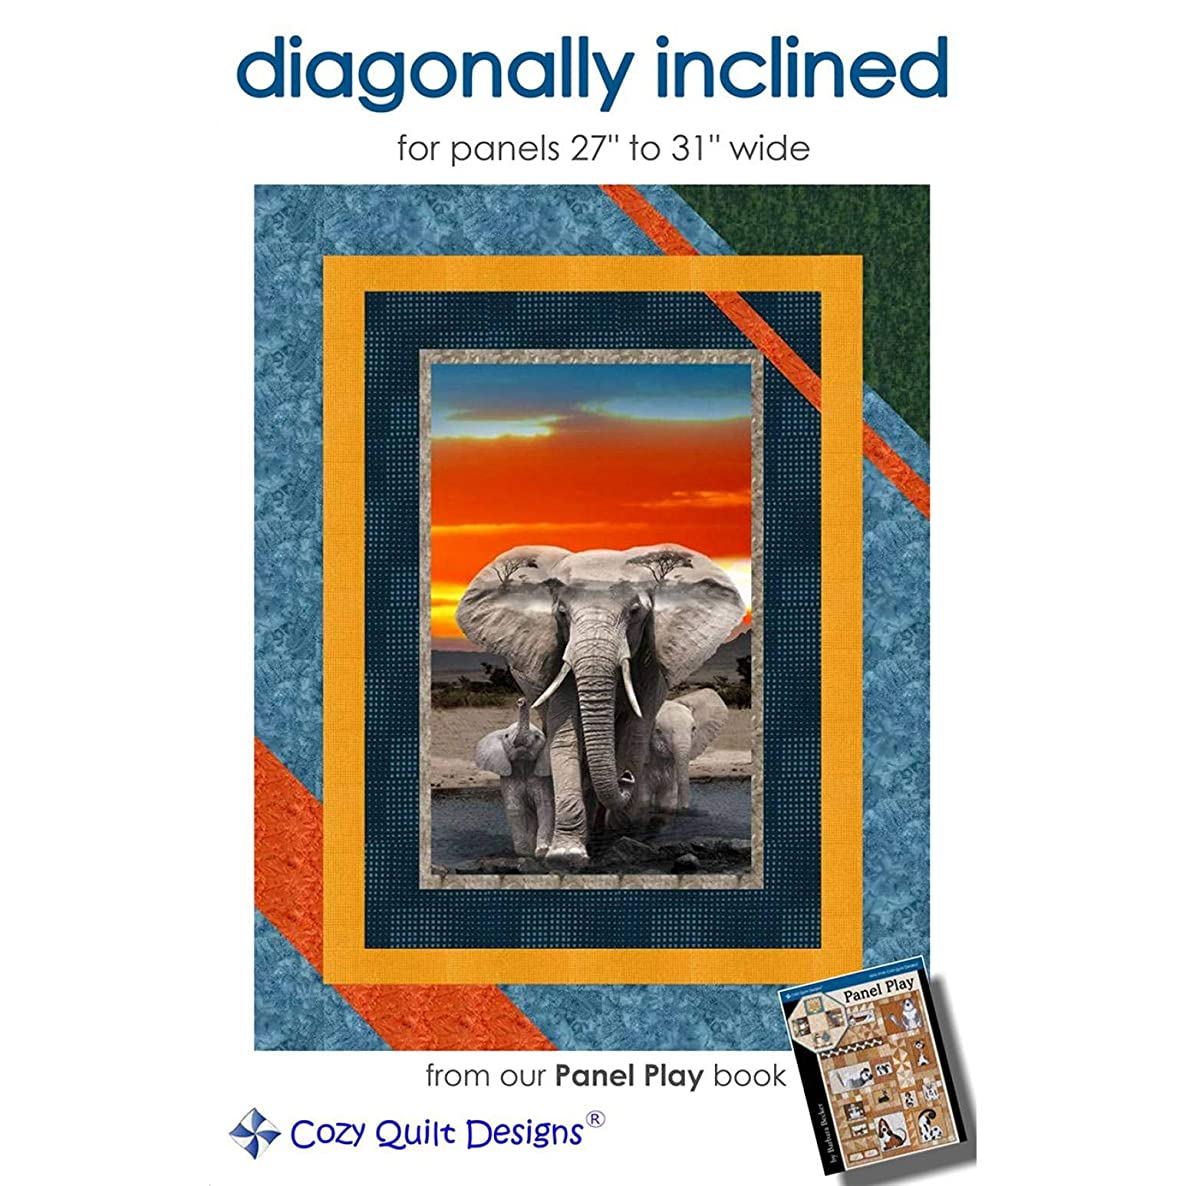 Cozy Quilt Designs CQD01198 Diagonally Inclined Pattern